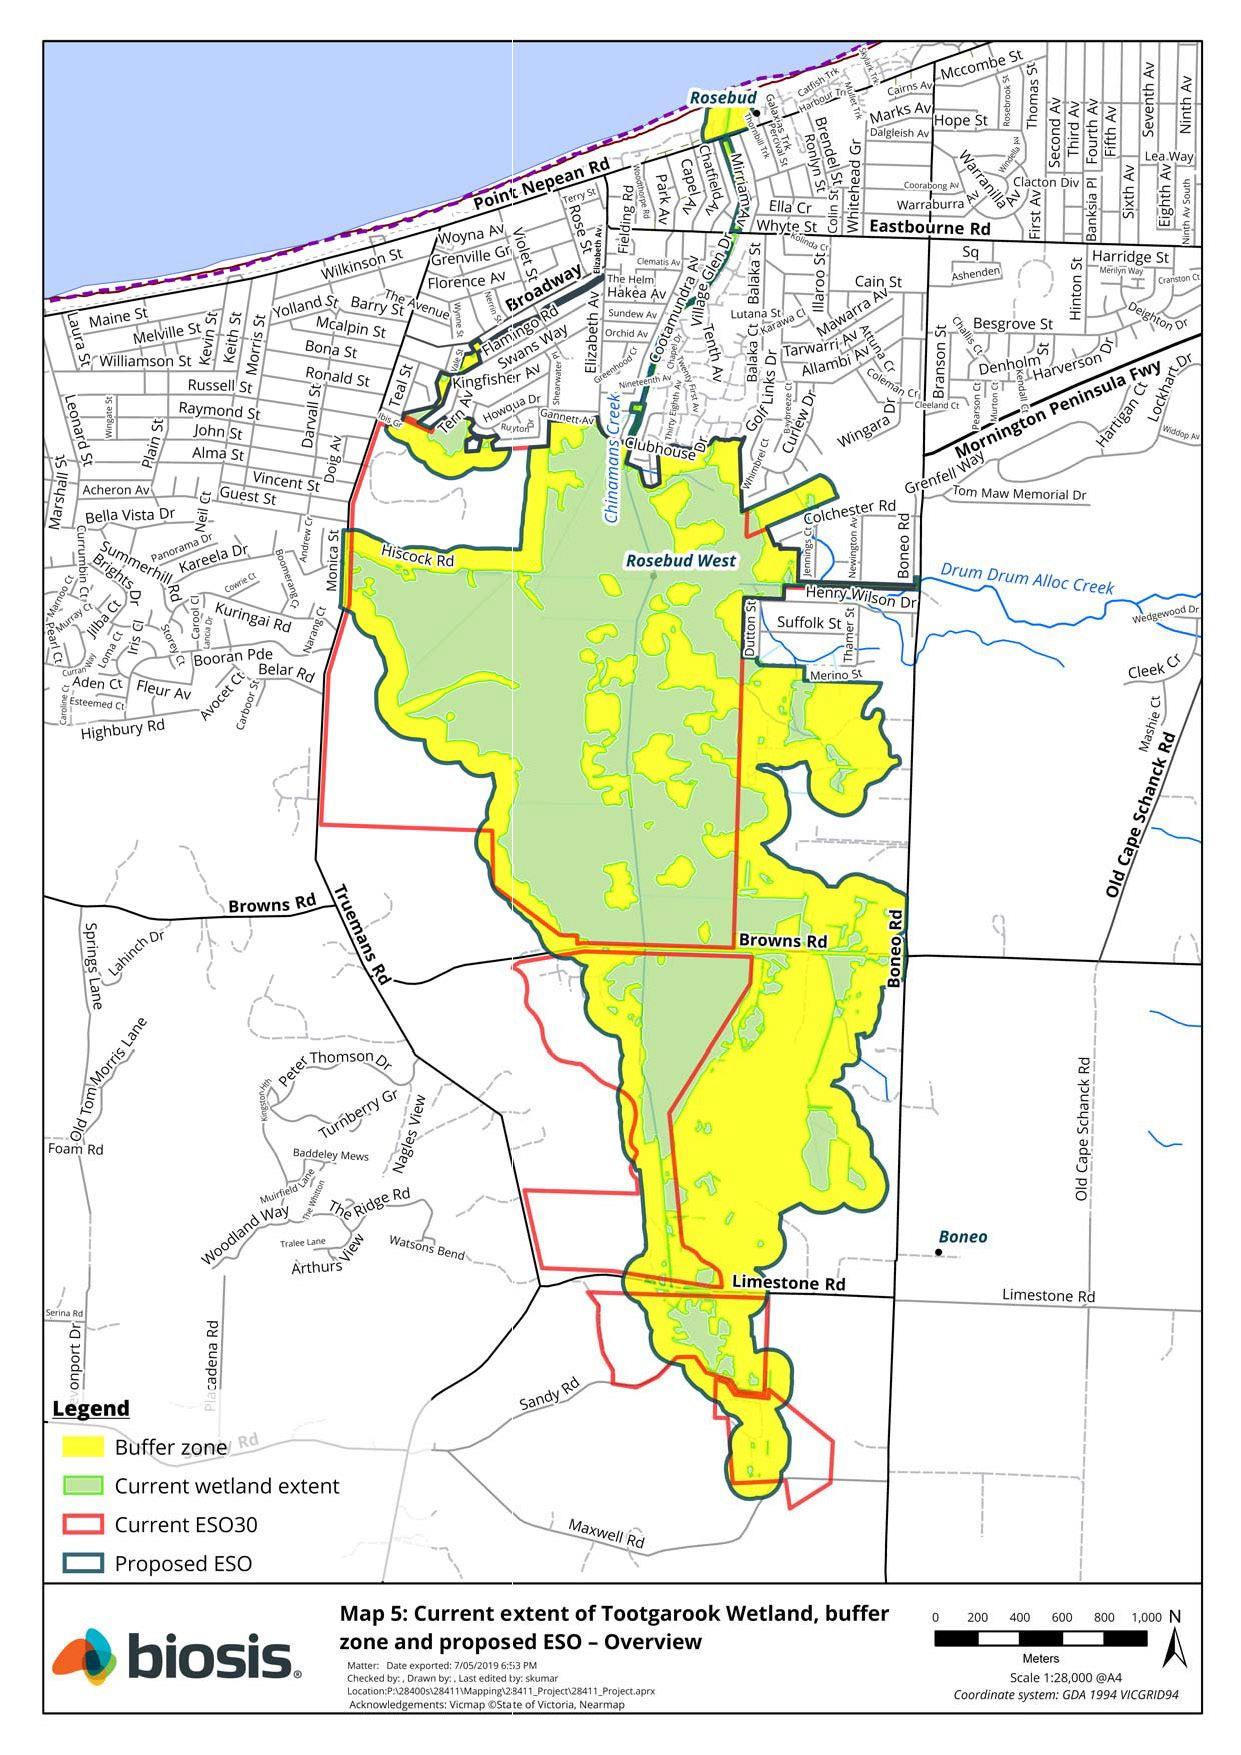 Map-5-Current-Tootgarook-Wetland-Extent-and-Buffer-Zone.jpg